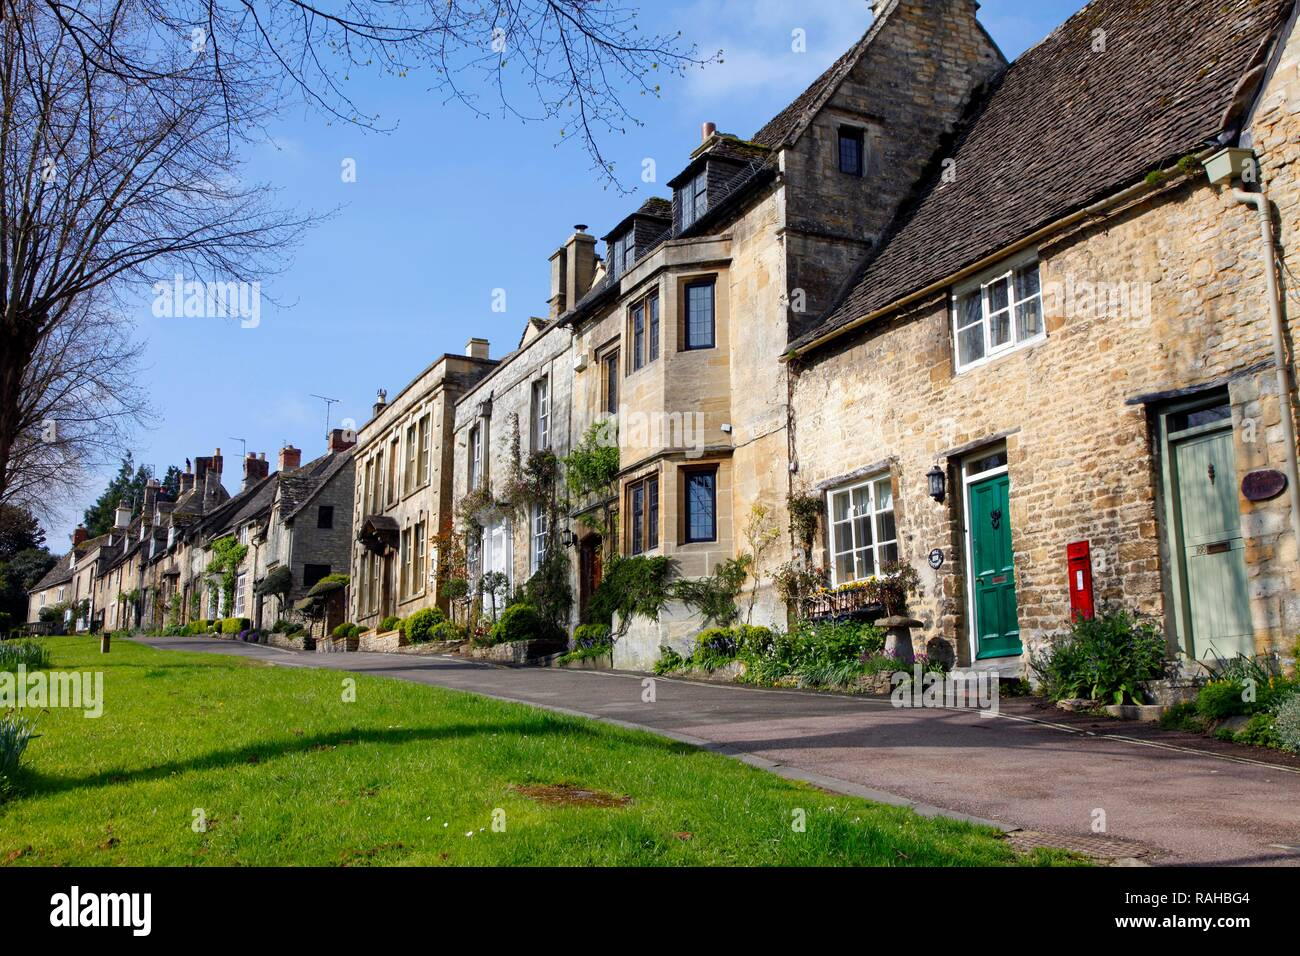 Old stone houses along High Street, Burford, Oxfordshire, Great Britain, Europe - Stock Image